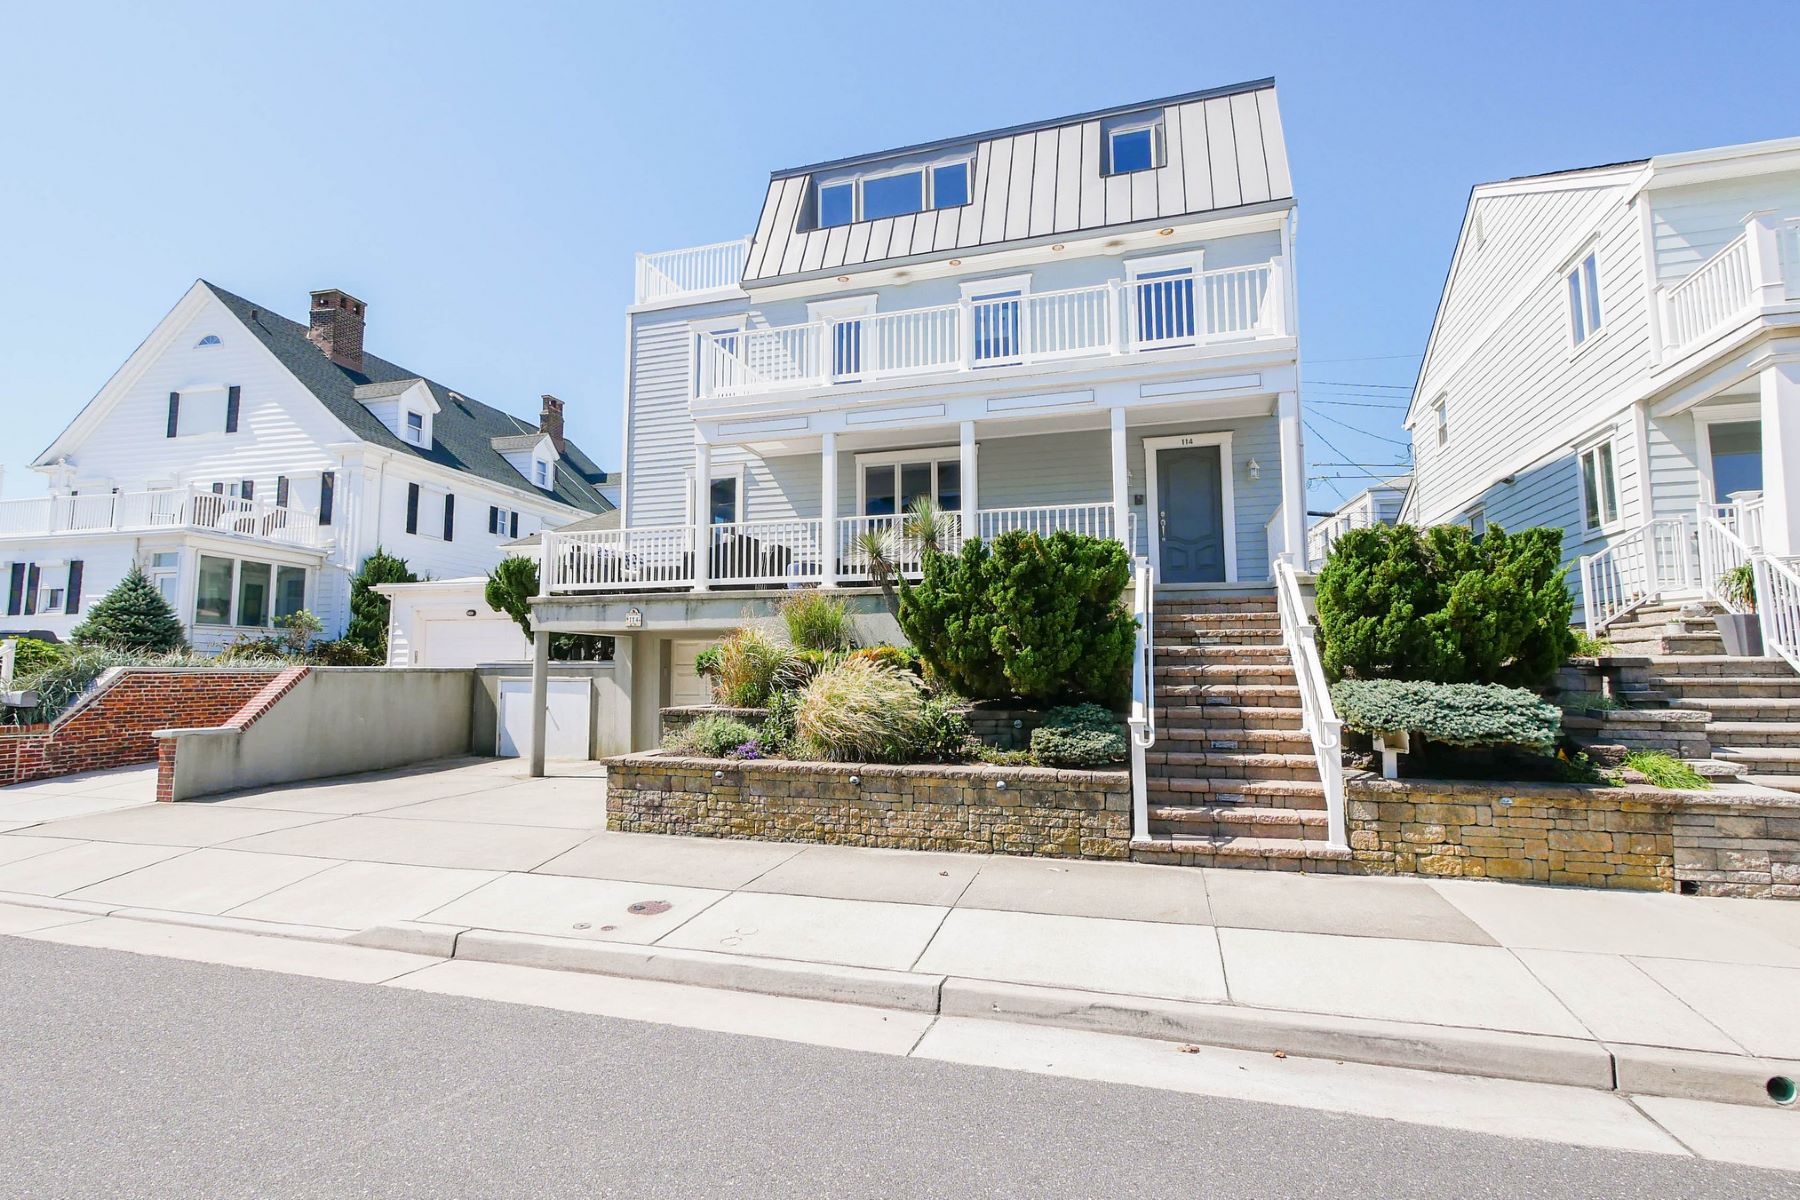 Single Family Homes for Active at 114 S. Mansfield Ave. 114 S. Mansfield Ave, BEACHBLOCK ONE OFF OCEANFRONT Margate, New Jersey 08406 United States